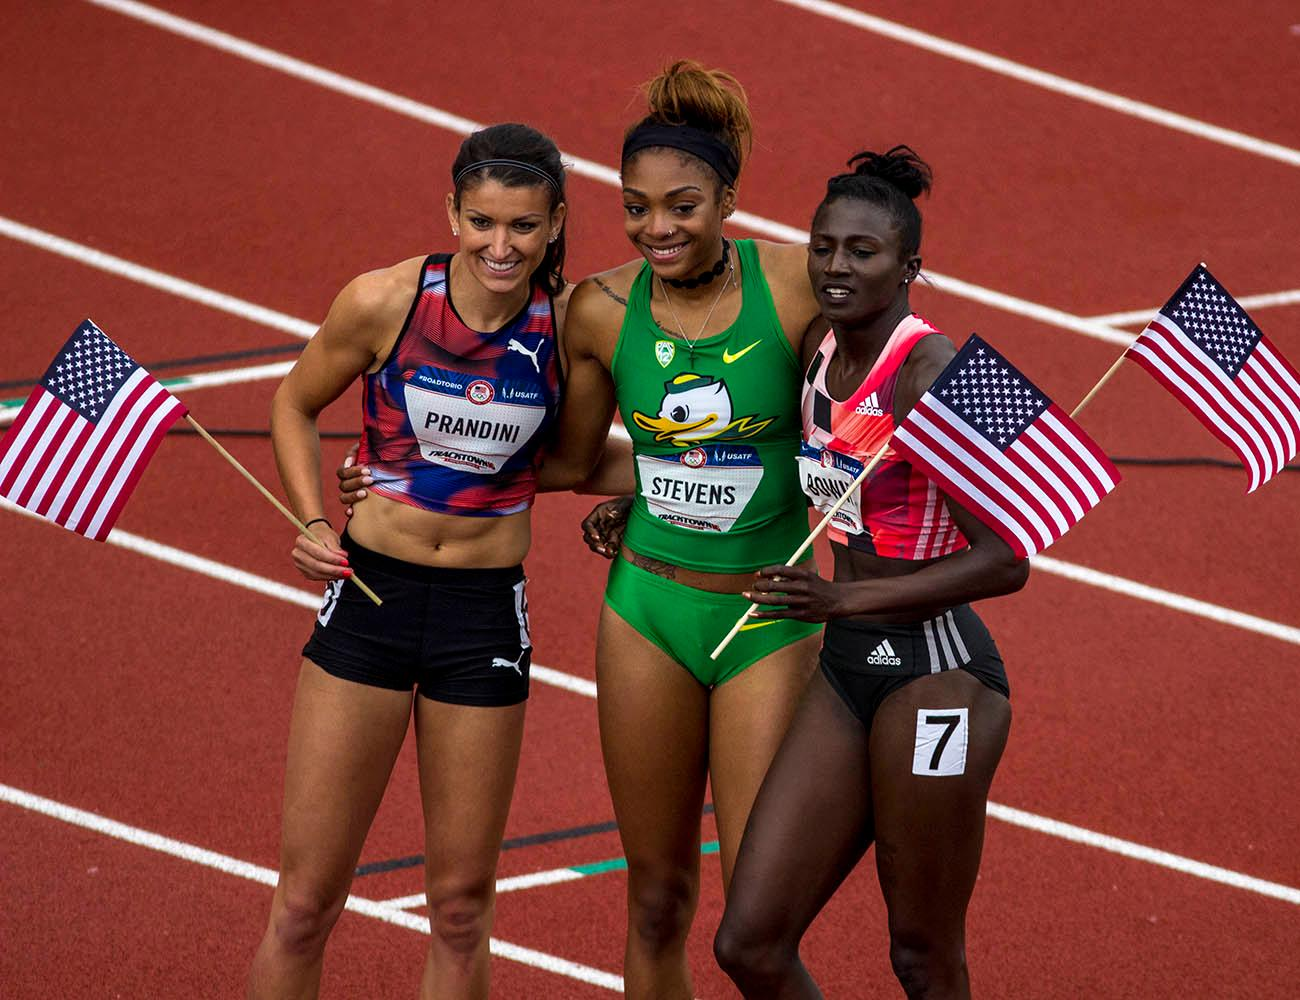 From left to right, Jenna Prandini, Deajah Stevens, and Tori Bowie pose for a photograph after qualifying for the Rio Olympics in the Women�s 200m Dash. Prandini finished third with a time of 22.53. Stevens finished second with a time of 22.30. Bowie finished first with a time of 22.25. Day 10 of the U.S. Track and Field Trials concluded Sunday at Hayward Field in Eugene, Ore. The competition lasted July 1 through July 10. Photo by Amanda Butt